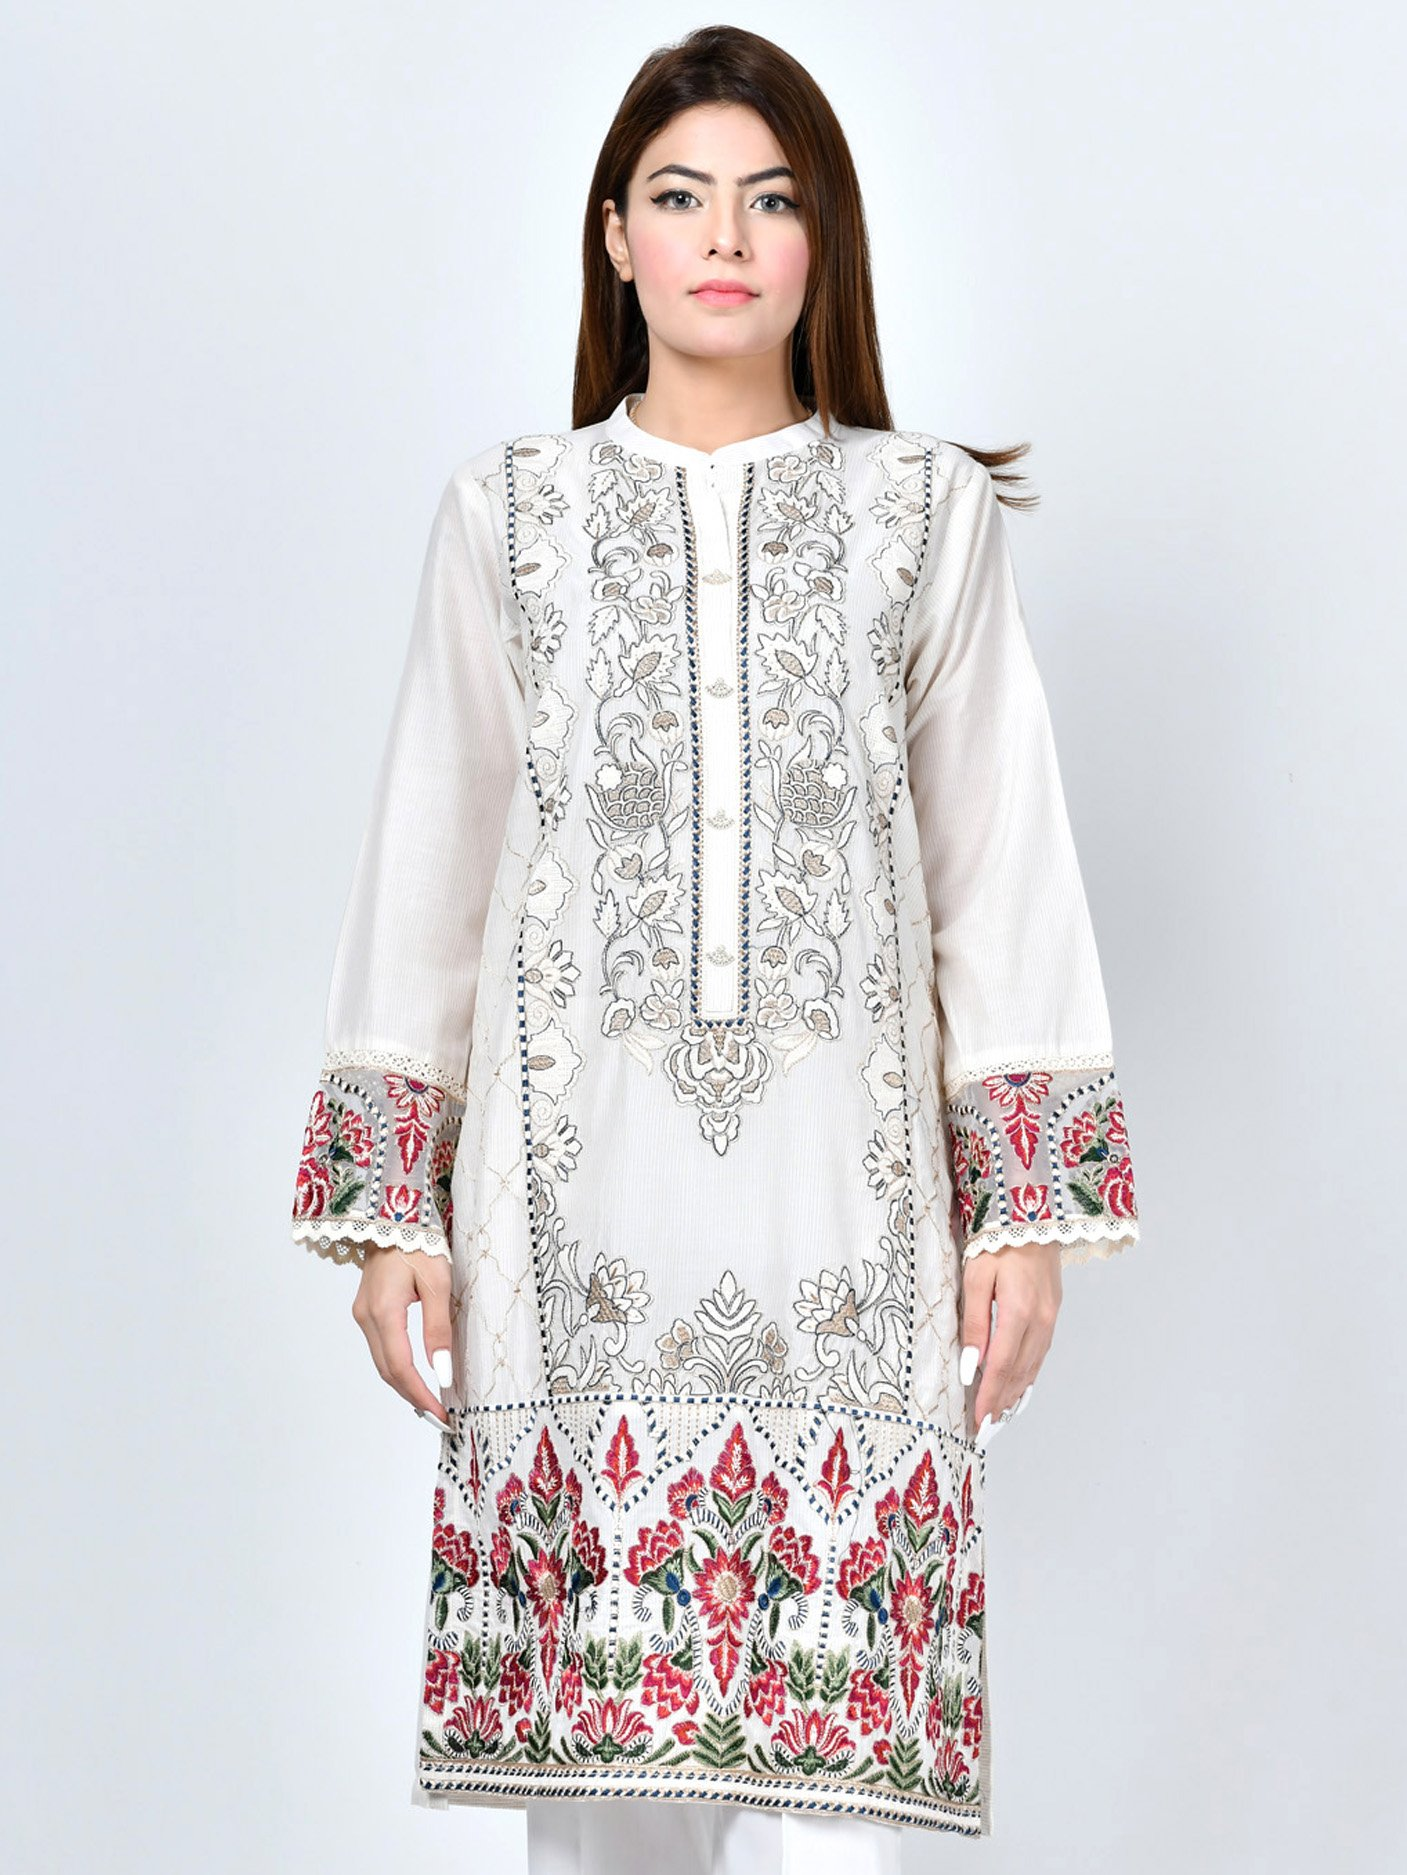 1Pc EMBROIDERED LAWN SHIRT Limelight